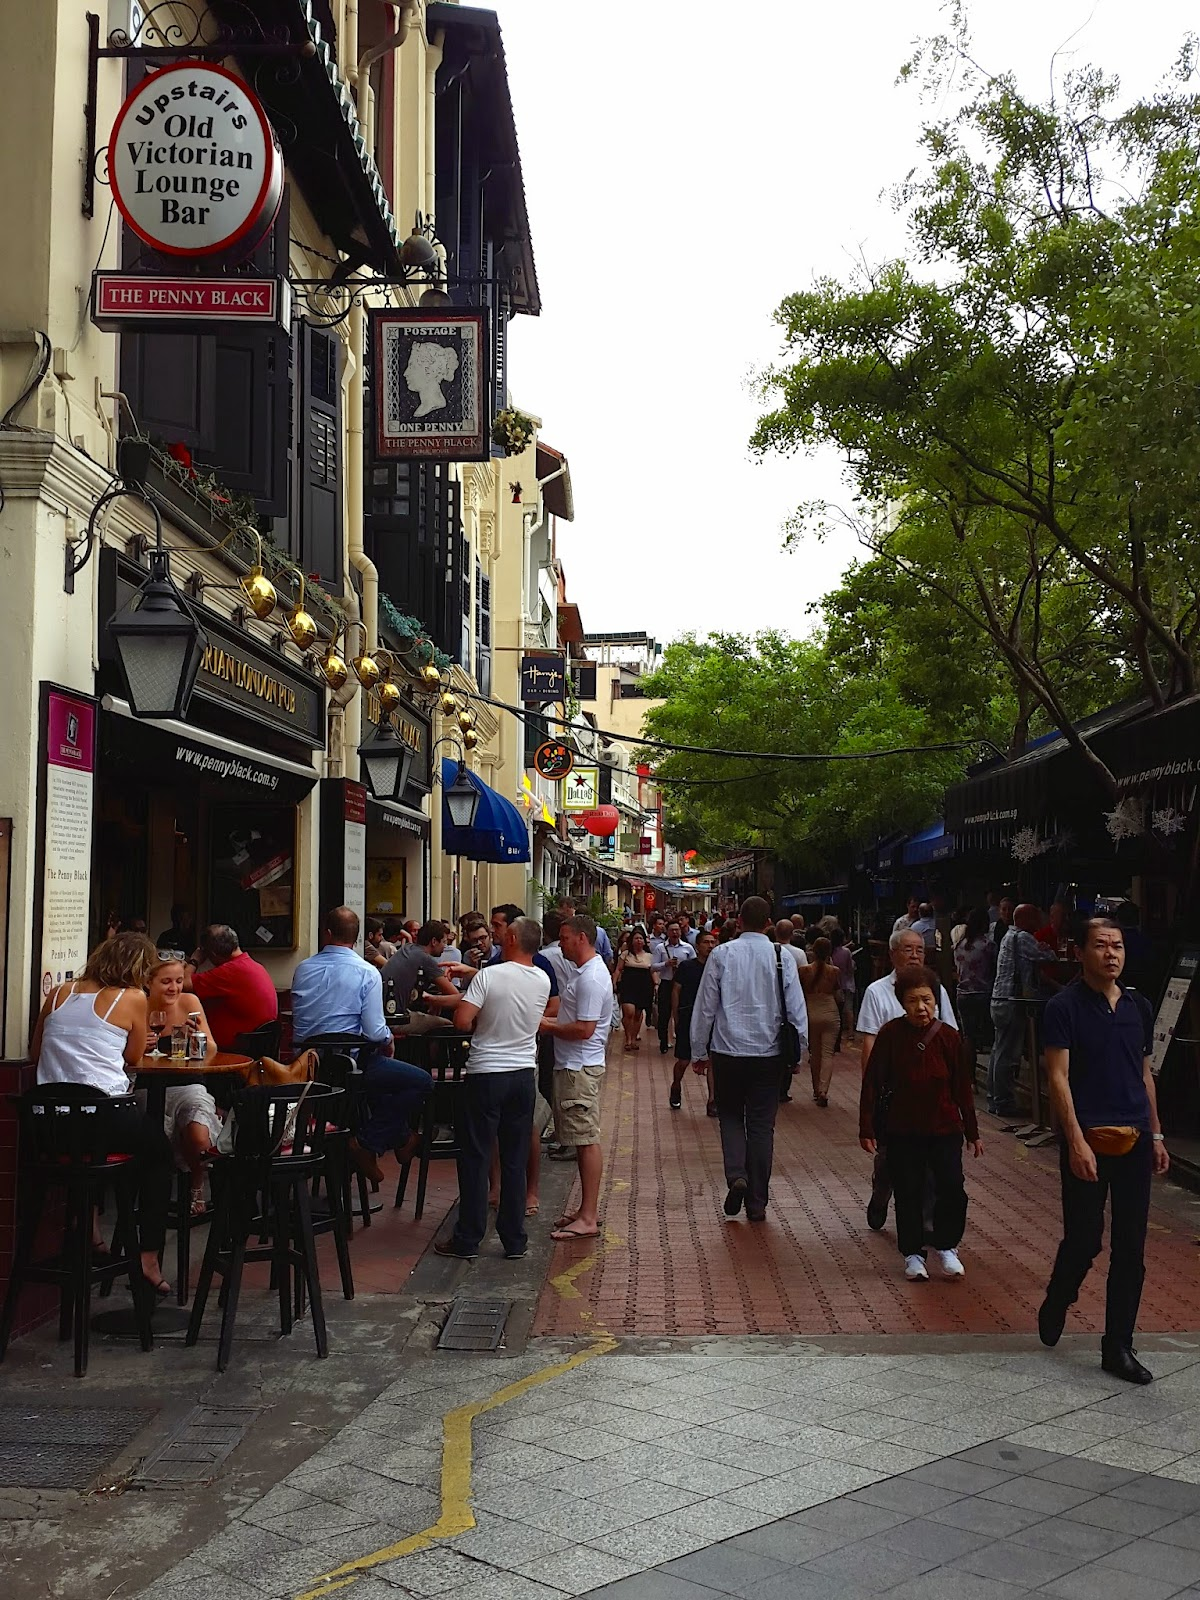 Boat Quay Restaurants and Pubs Singapore